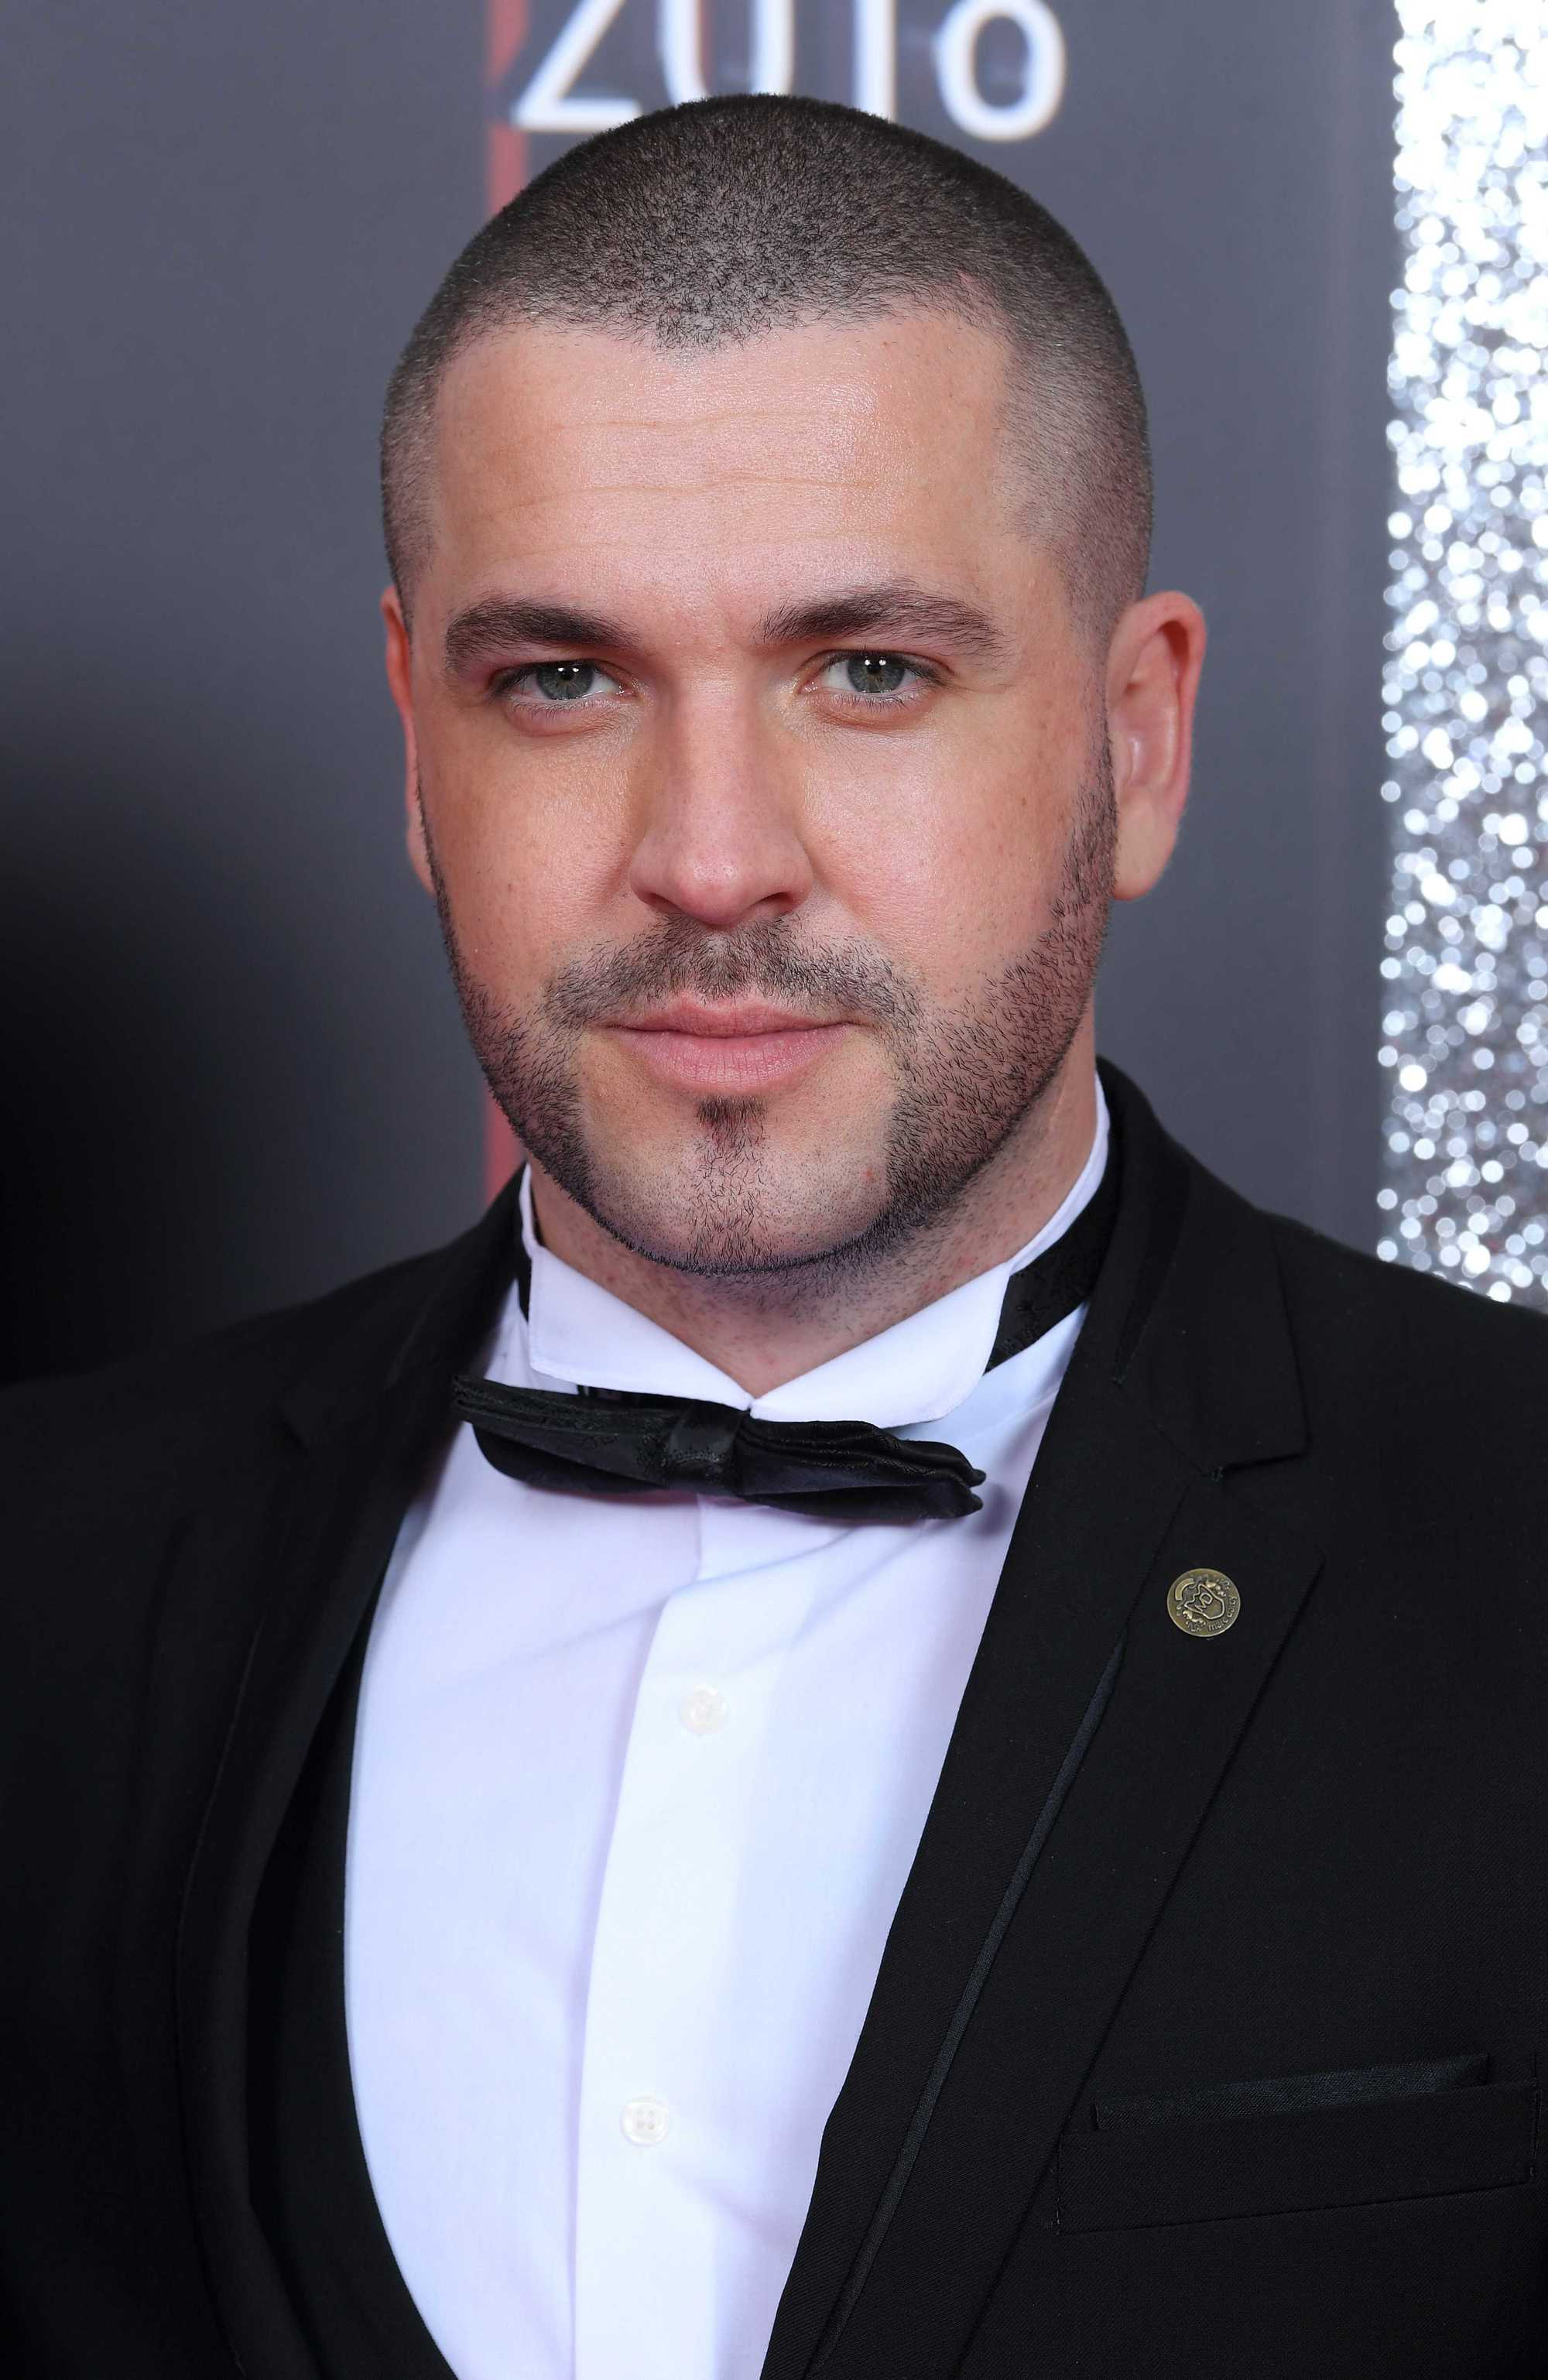 Hairstyles for receding hairline: Headshot of Shayne Ward with a buzz cut, wearing a tux